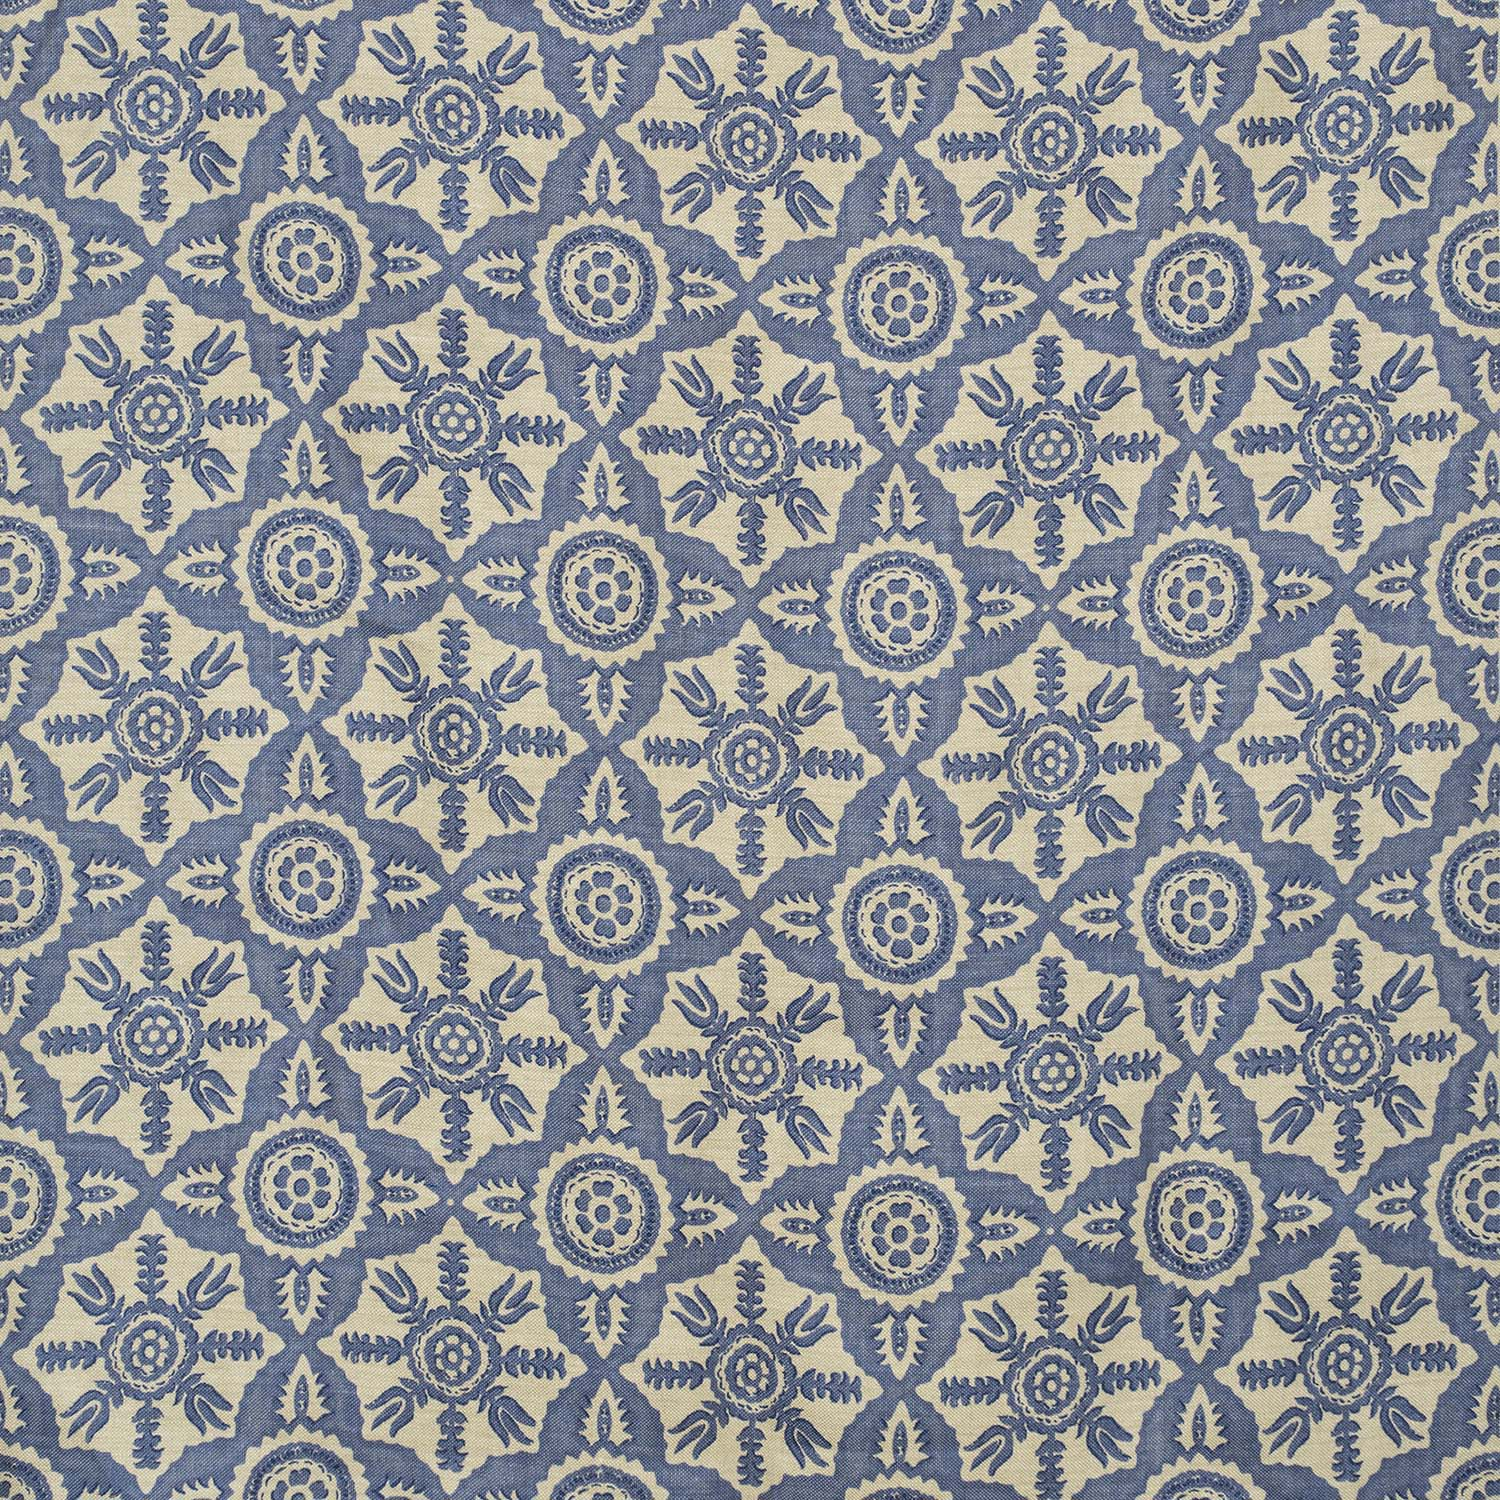 <p><strong>ROSSMORE</strong>indigo/oatmeal 7100-02<a href=/the-chatham-collection/rossmore-ii-indigo-oatmeal-7100-02>More →</a></p>